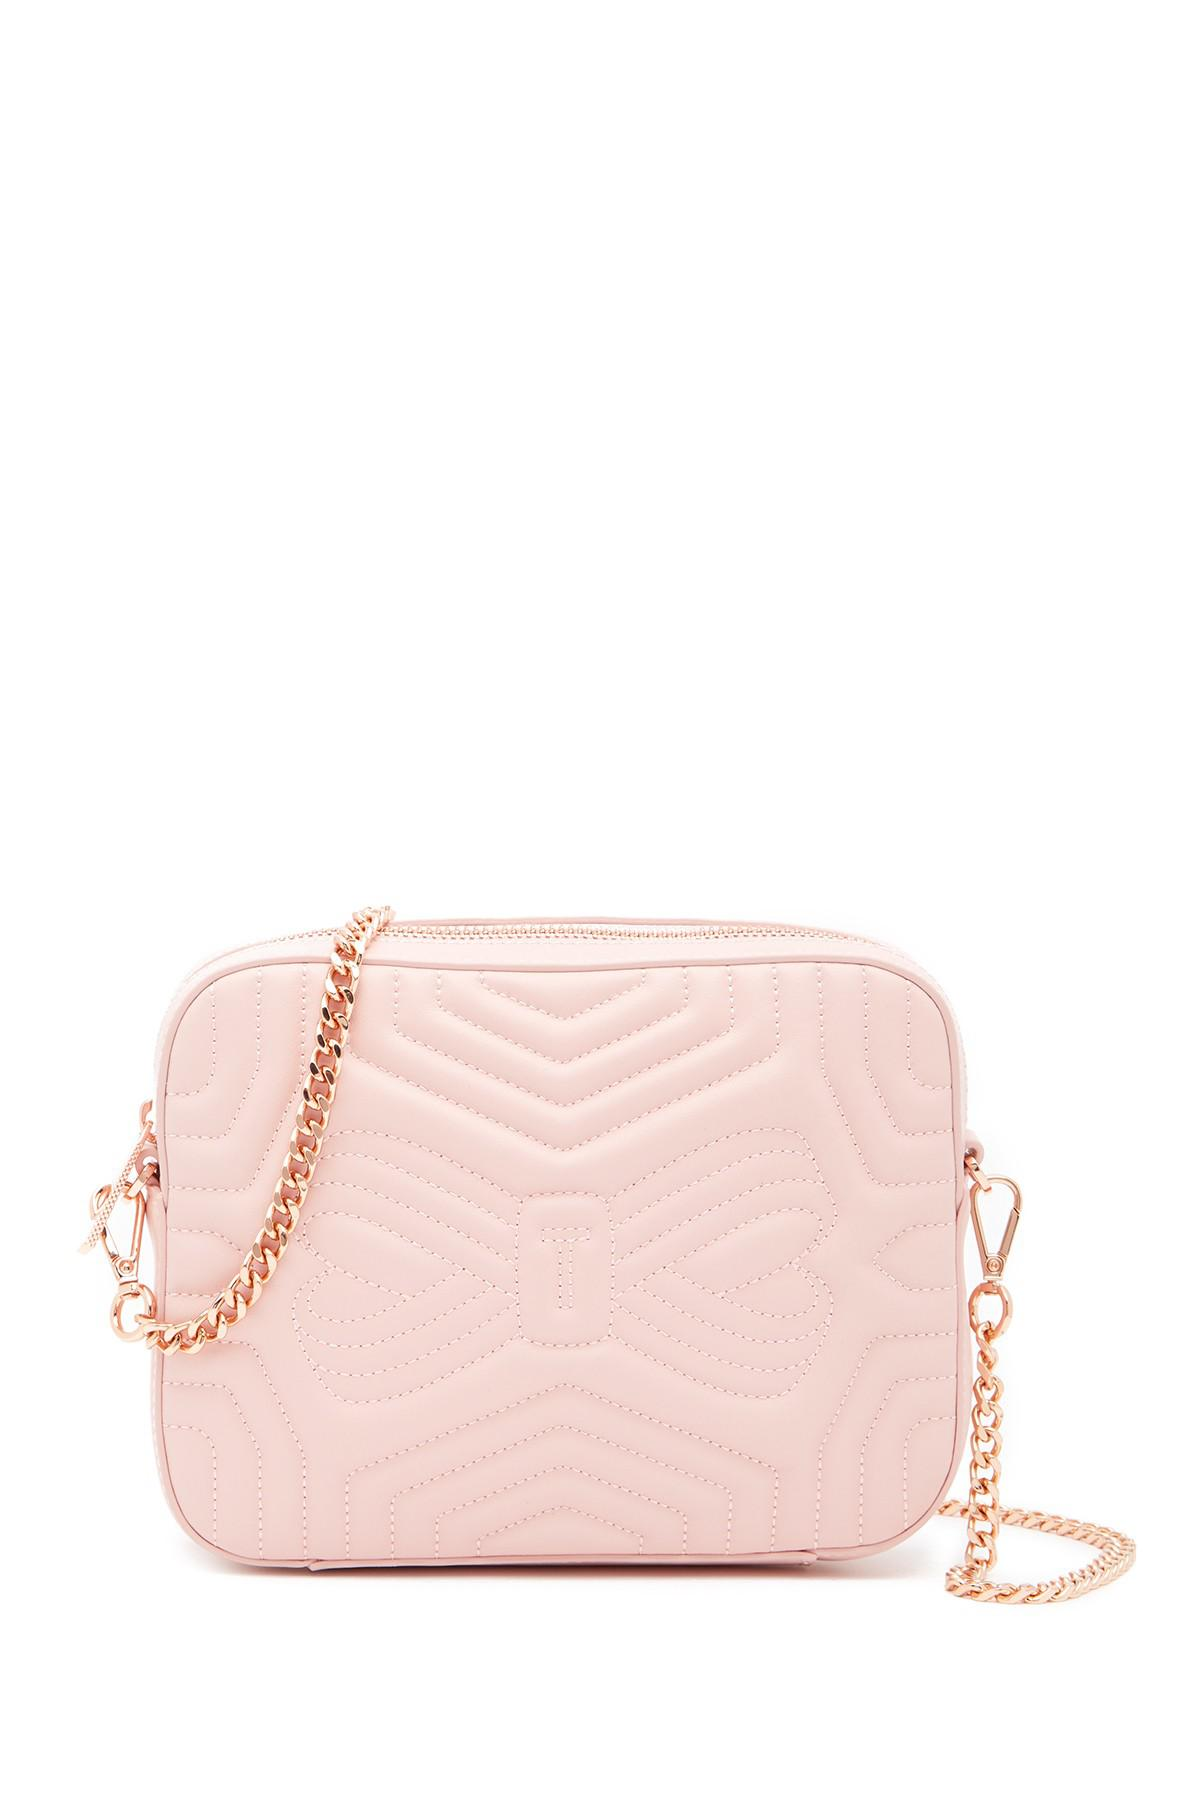 bdee84e03190 Gallery. Previously sold at  Nordstrom Rack · Women s Camera Bags ...